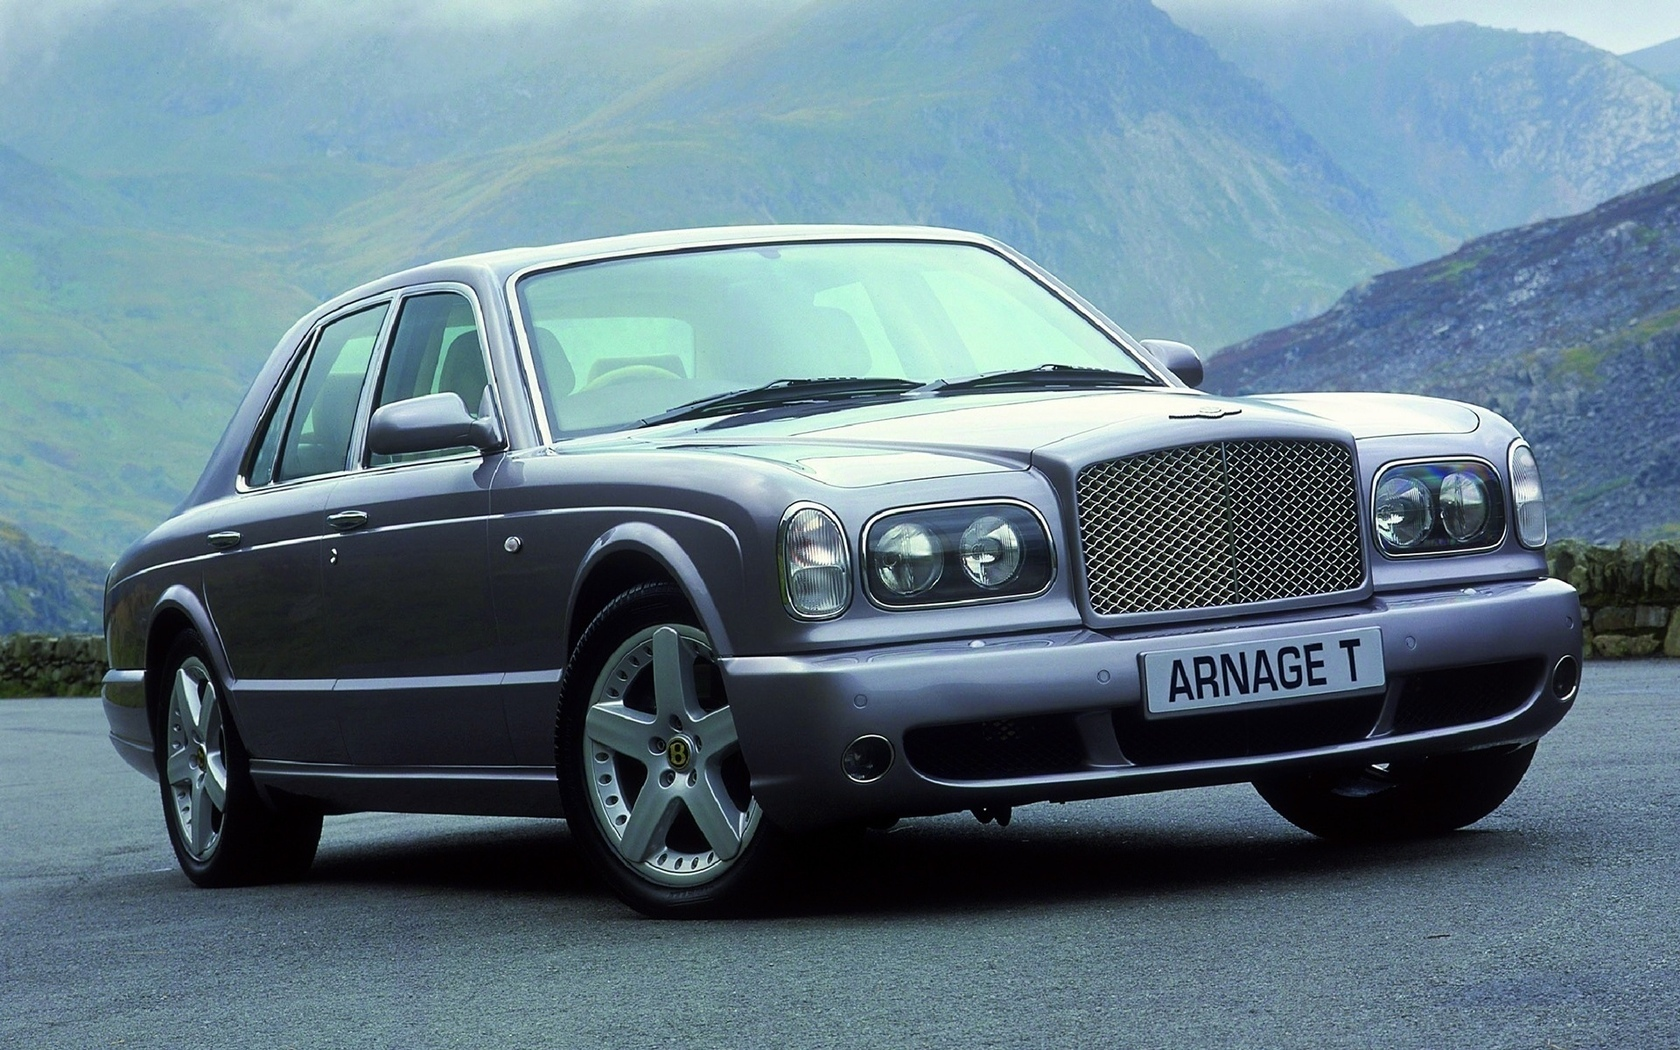 дорога, горы, arnage, bentley